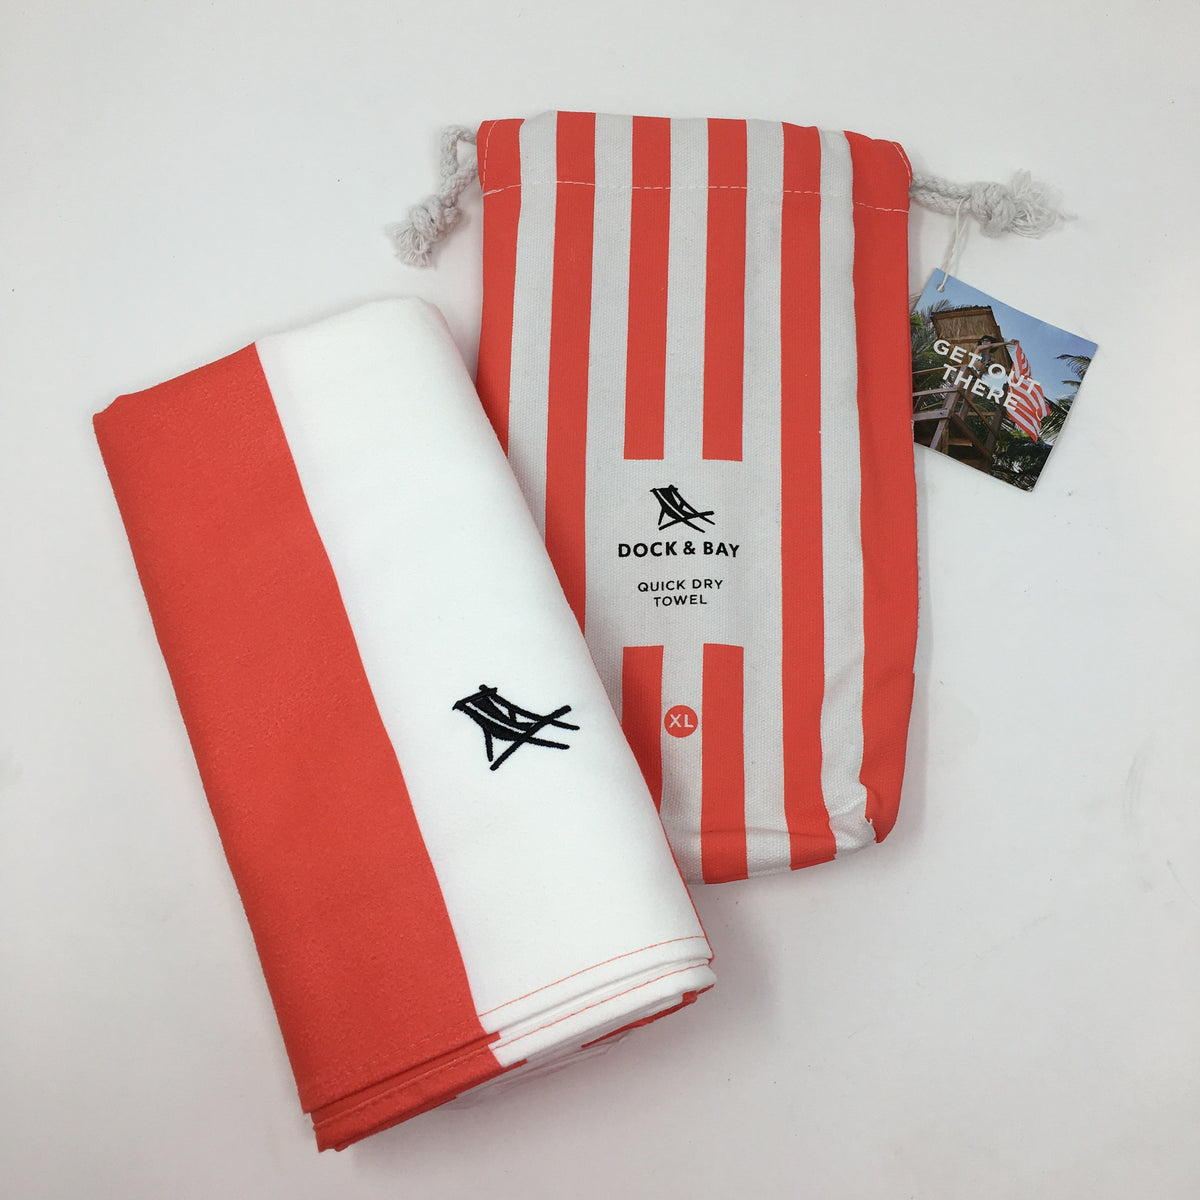 Dock & Bay Quick Dry Towel